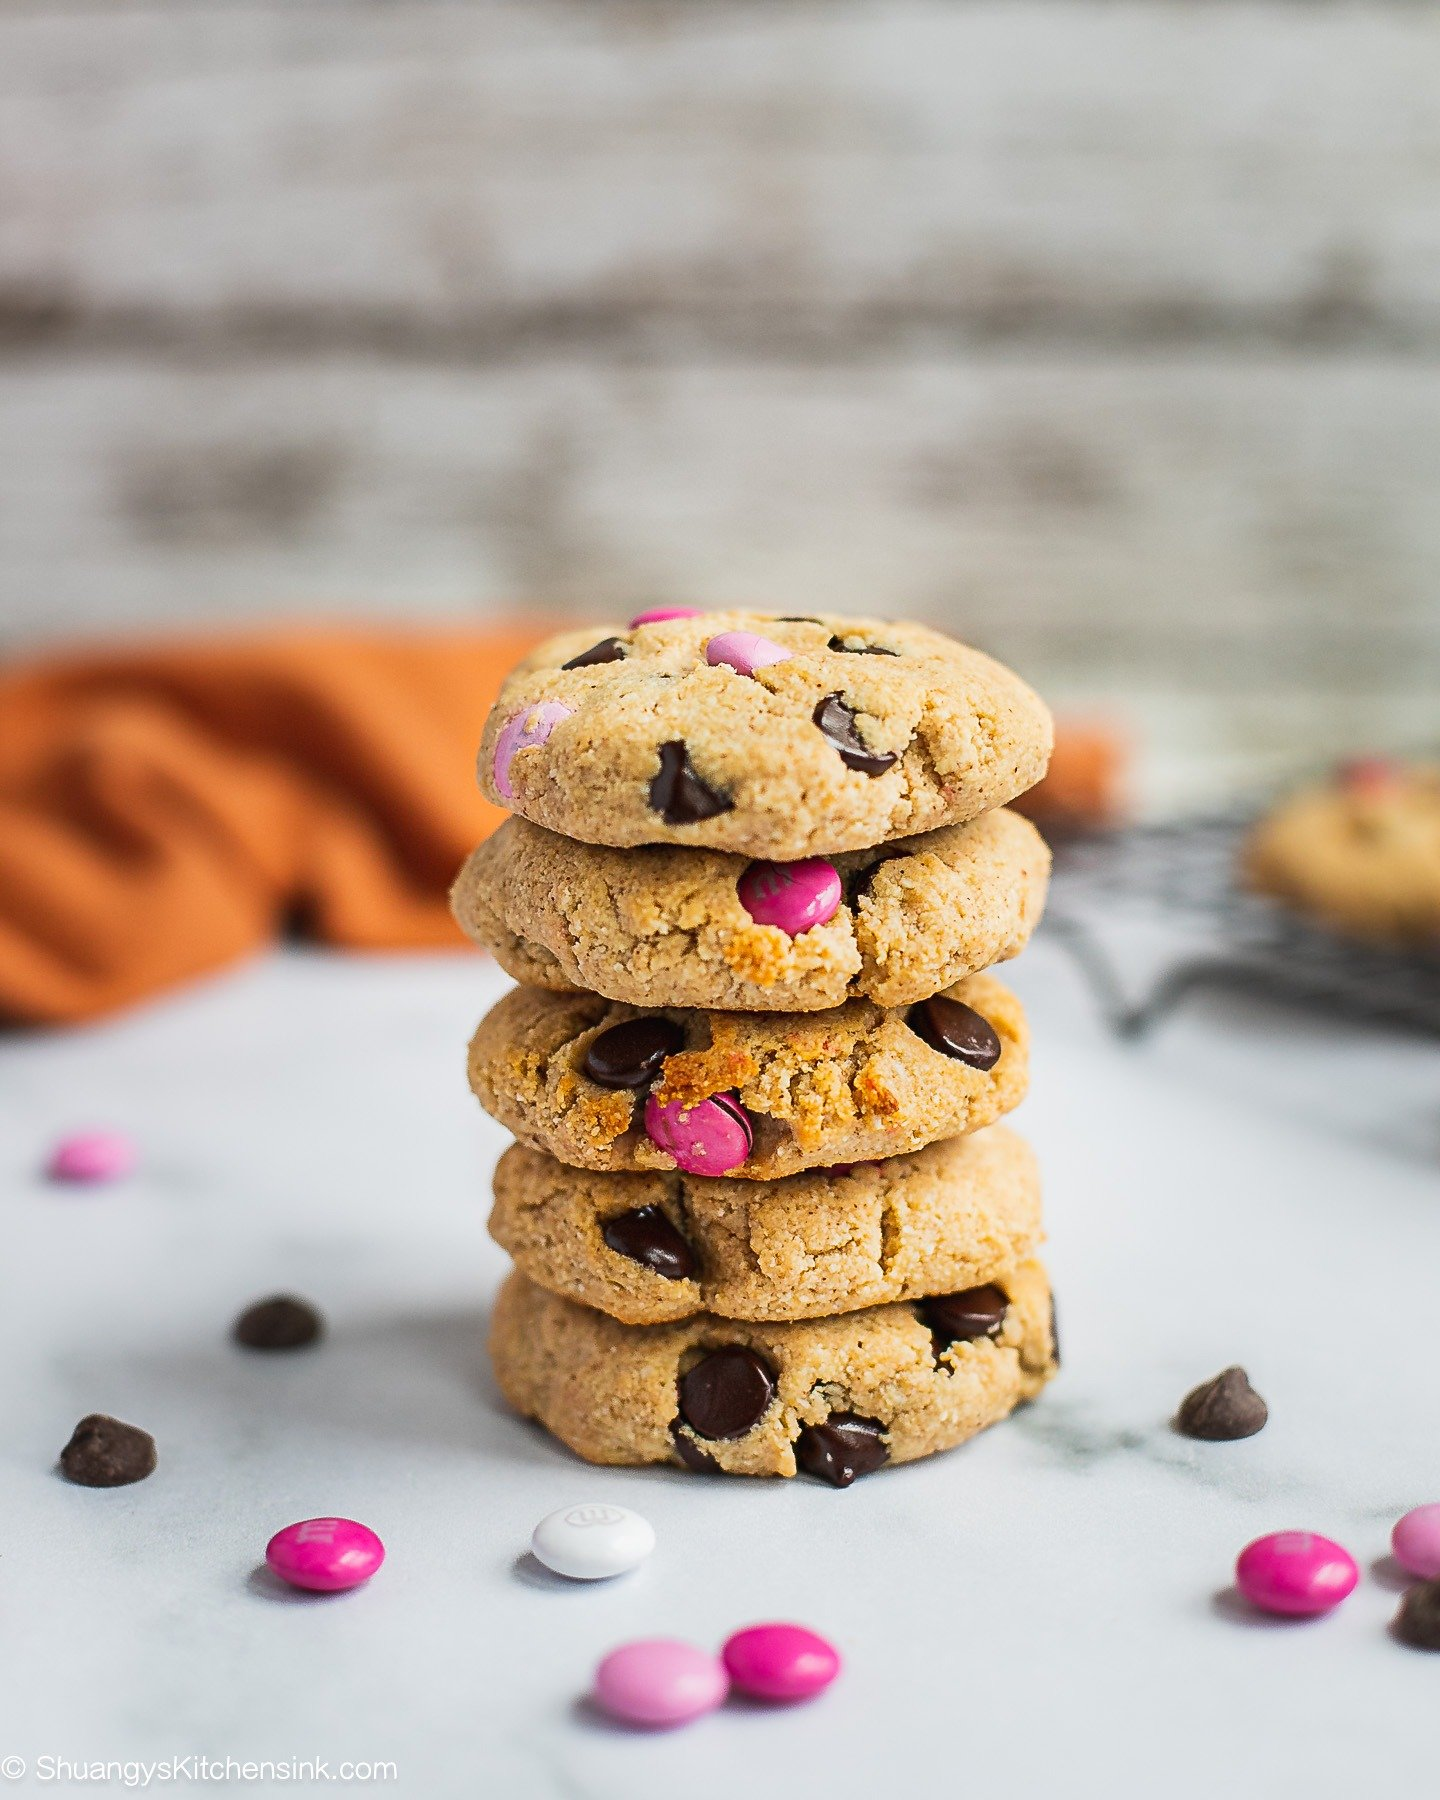 A stack of chocolate chip M&M cookies. There are pieces of M&Ms around it and an orange towel in the back.